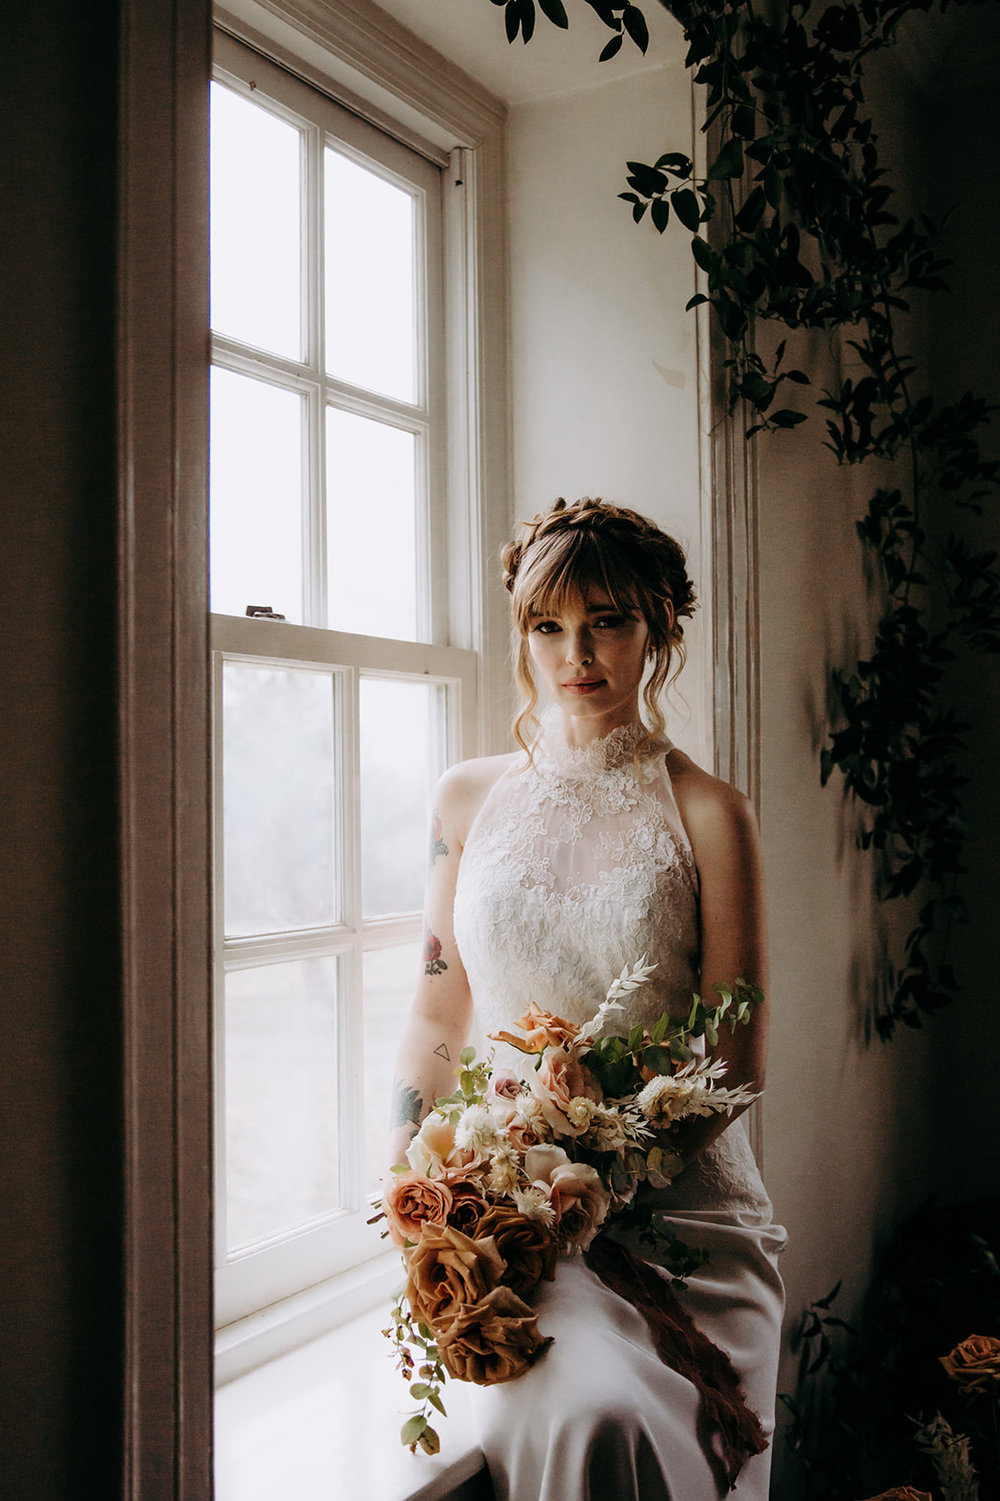 lea-ann-belter-bridal-editorial-windrift-hall-wedding-photographer-new-york-125.jpg